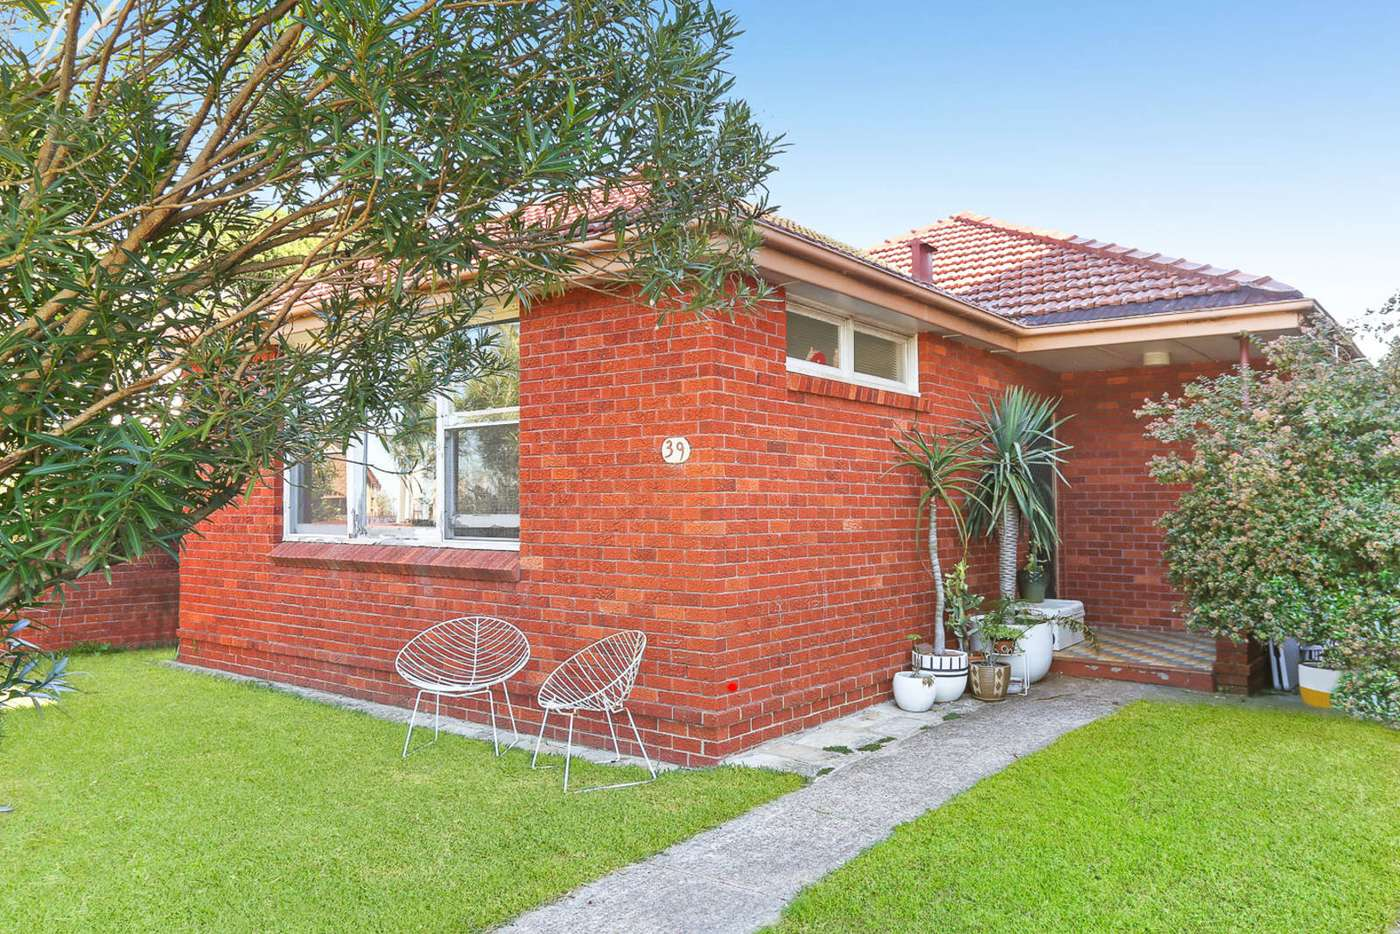 Main view of Homely house listing, 39 St Thomas Street, Bronte NSW 2024